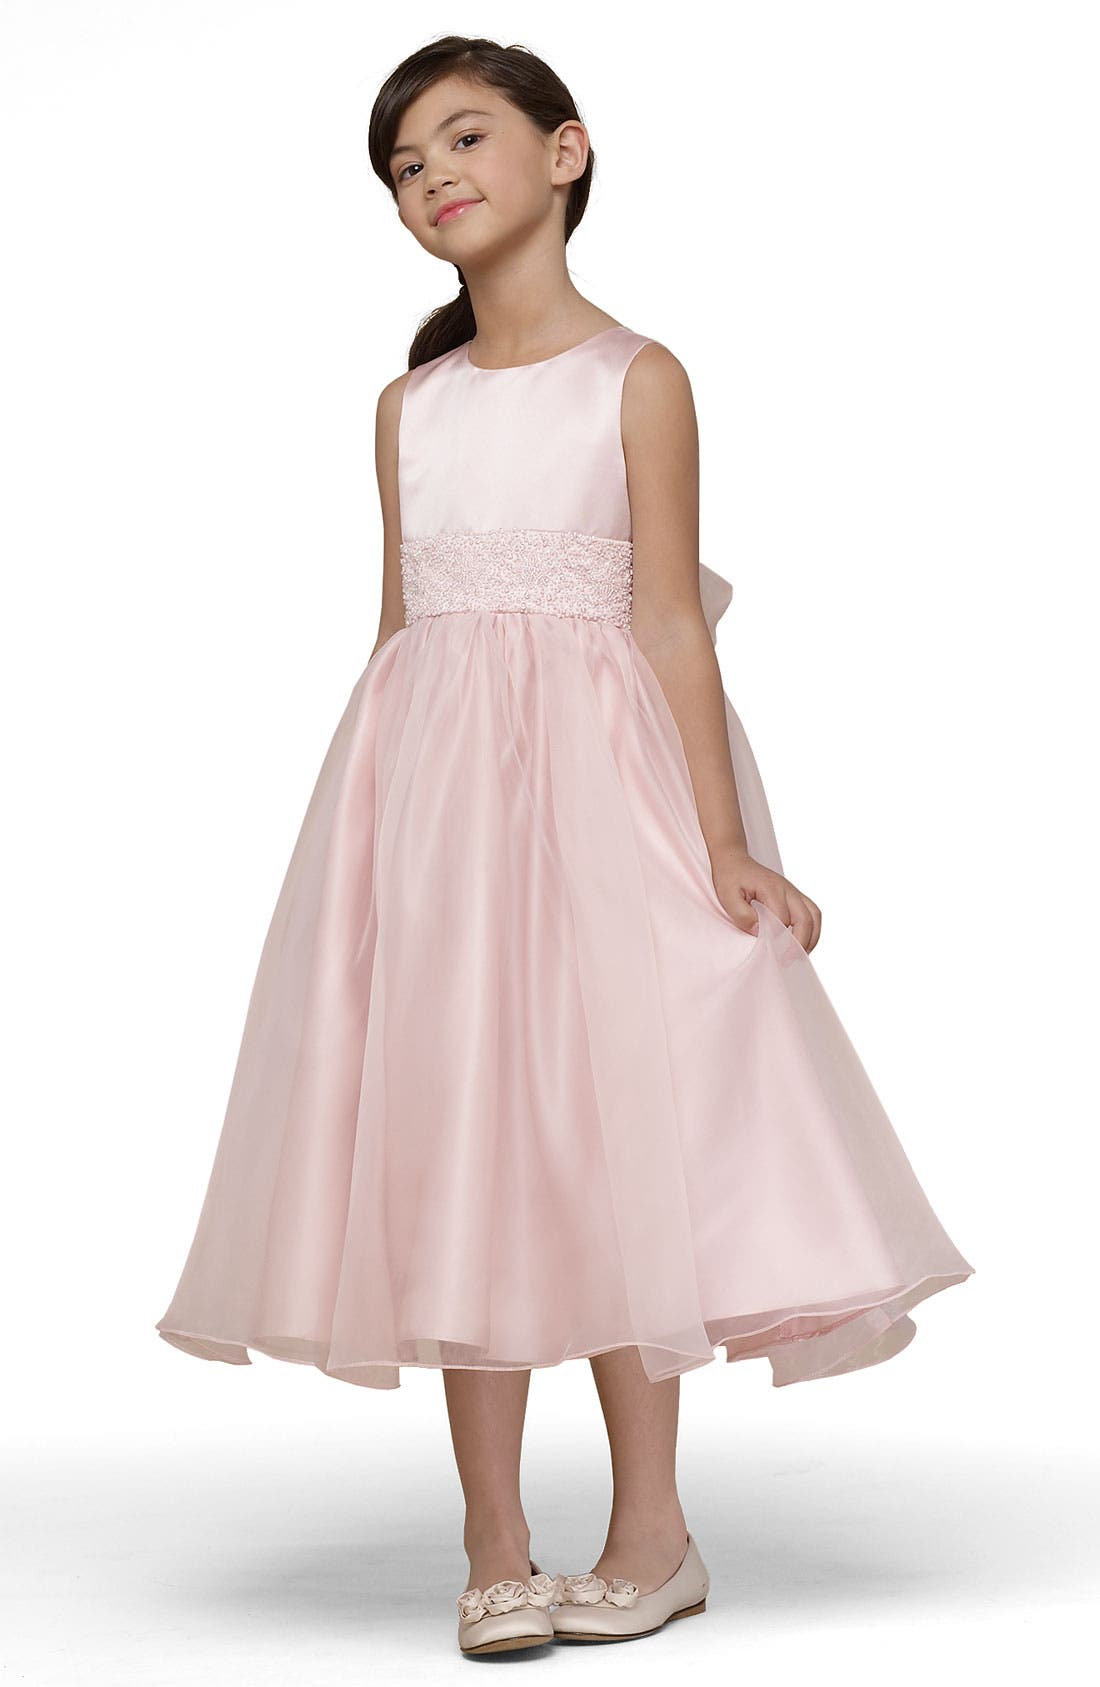 us angels first communion nordstrom